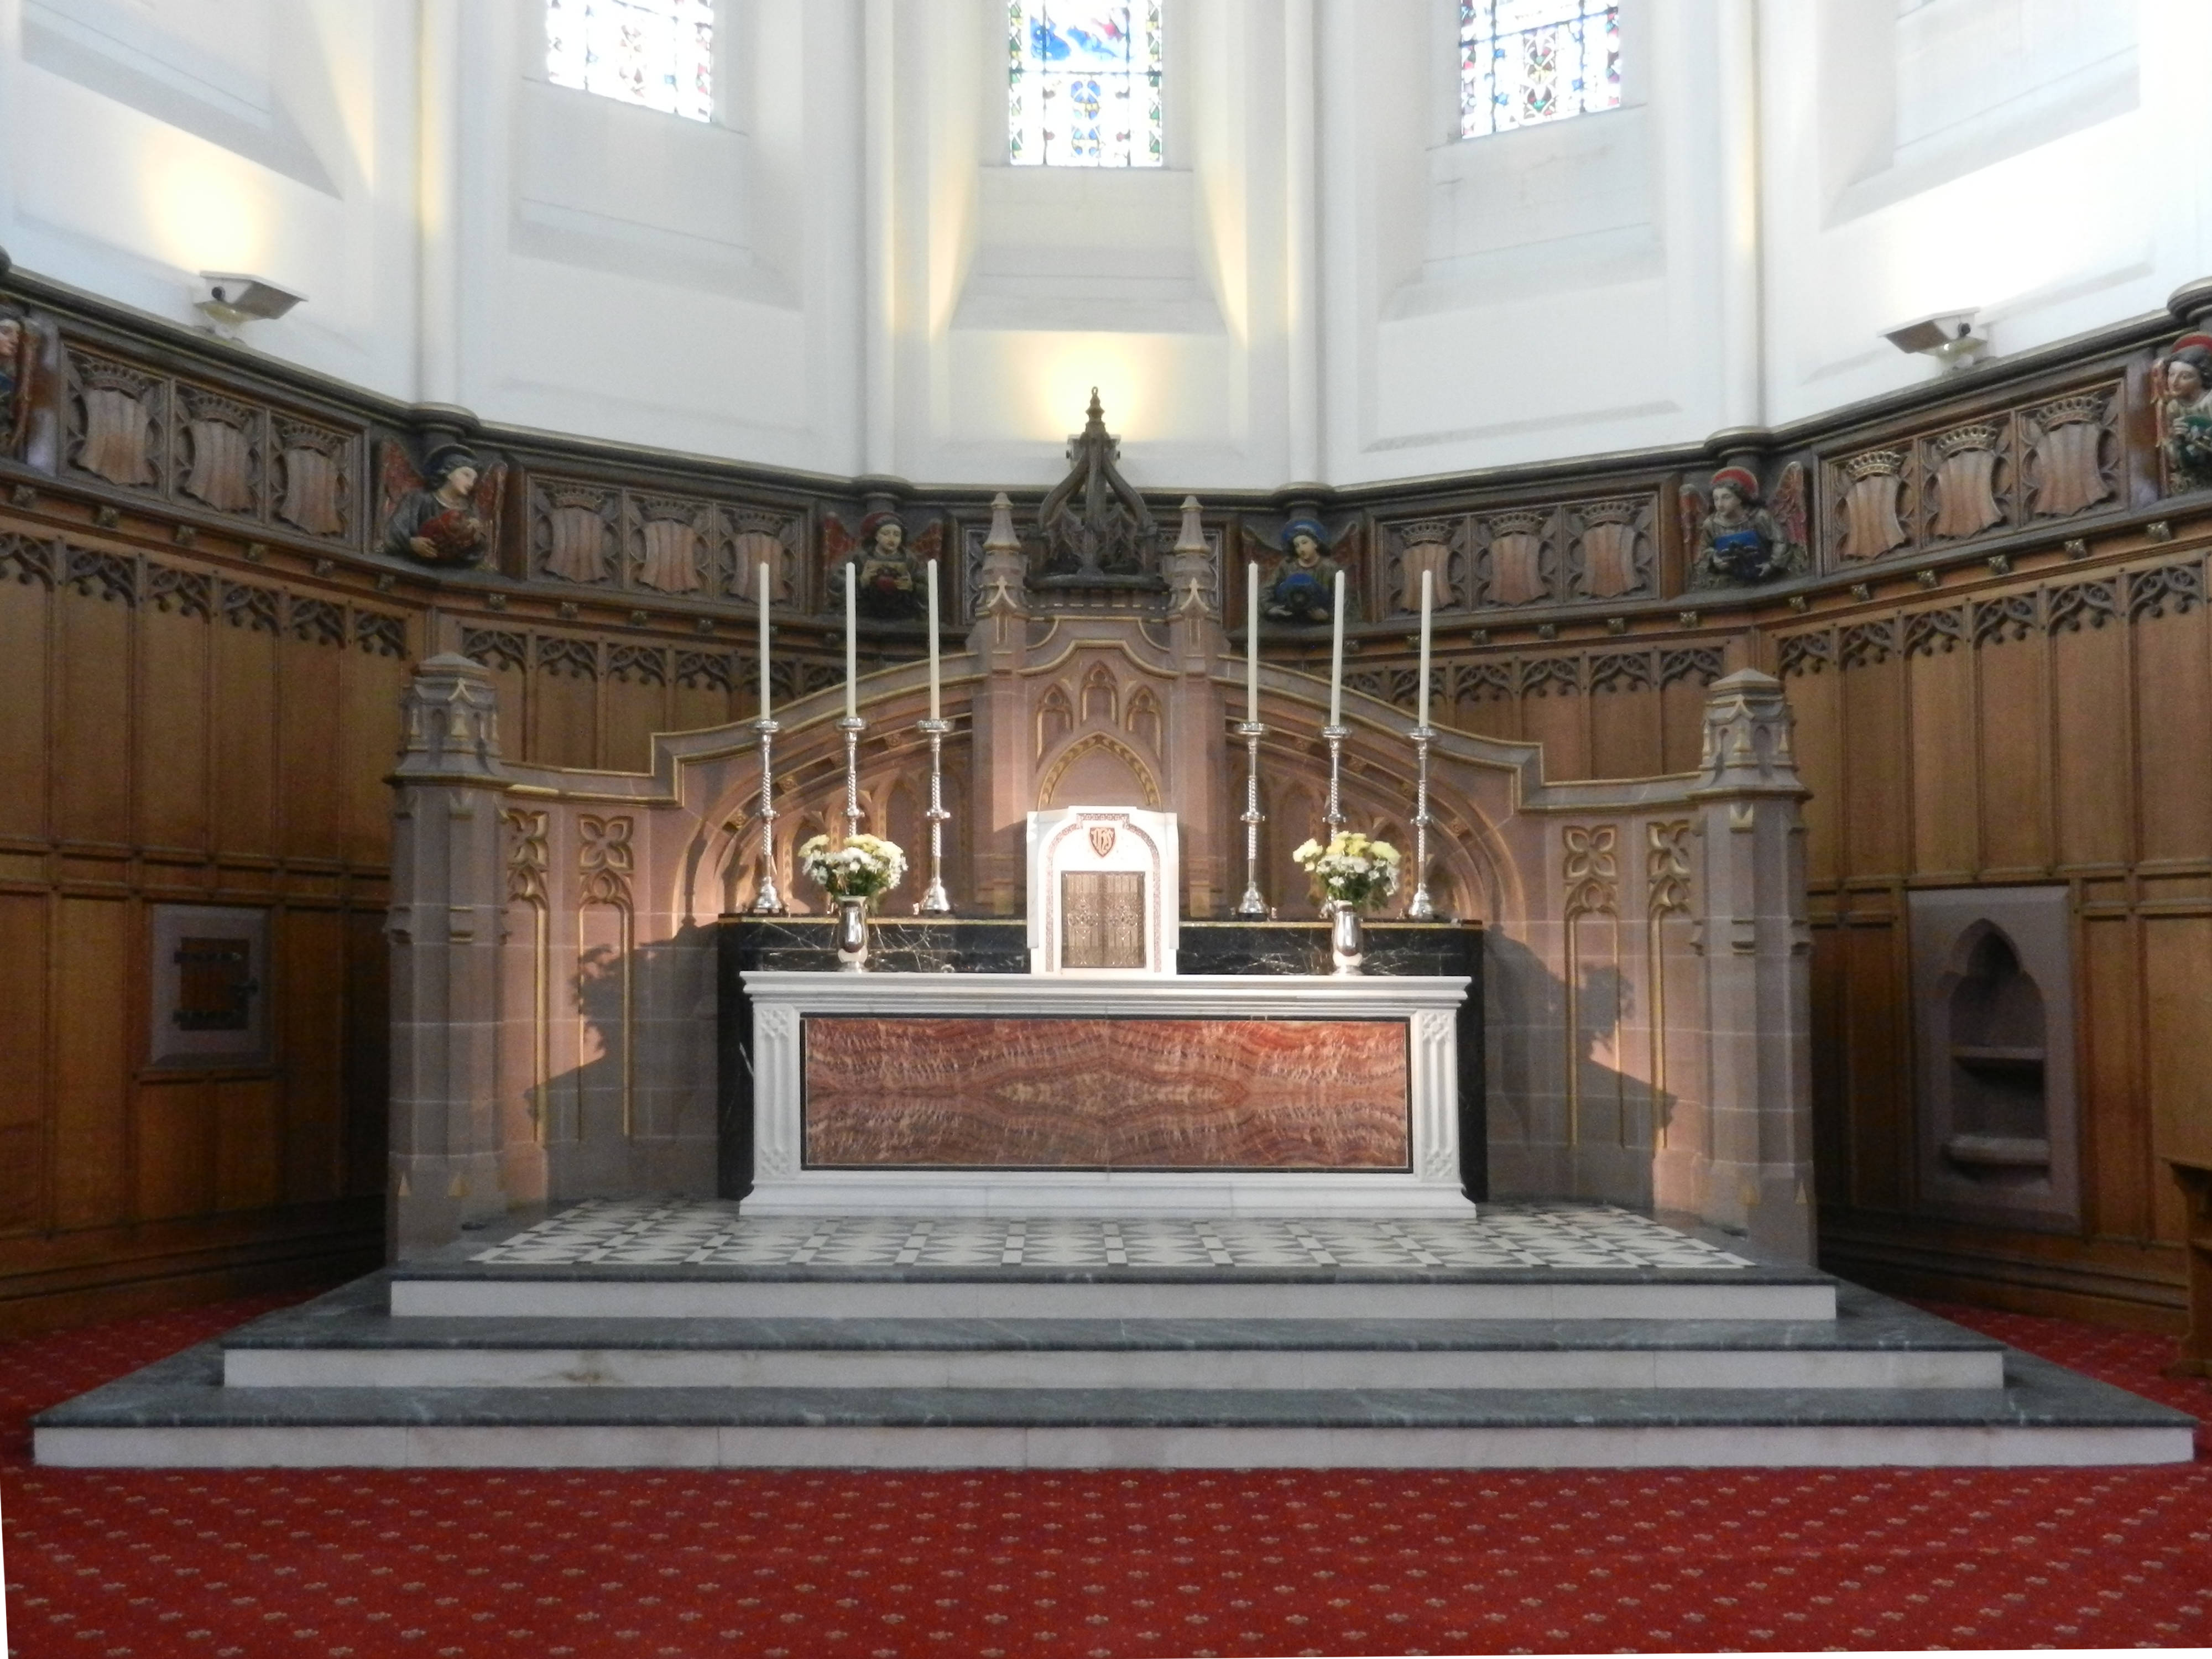 The old High Altar